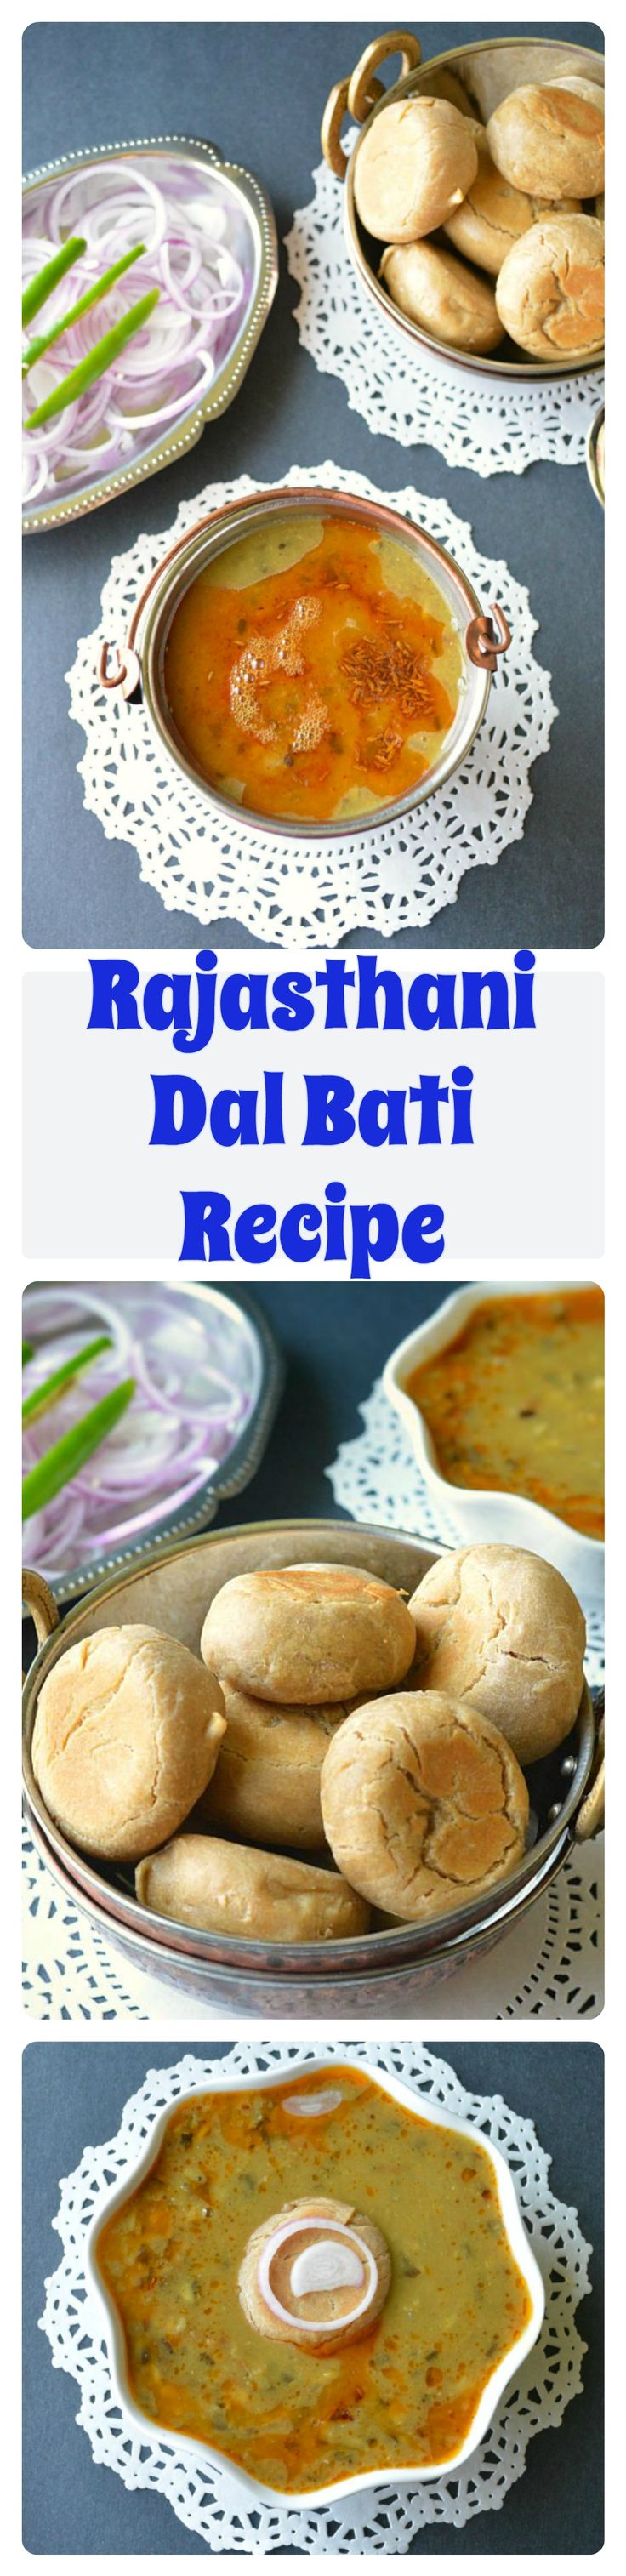 A #Rajasthani #Cuisine - #Dalbati . #Bati is a #wheat #dough balls that is cooked over gas/stove without oven. Enjoyed with #dal!! #rajasthani #baati #dinner #batirecipe #indianfood #foodie #recipeoftheday #recipes #dhal #daal #indianlentils #lentils